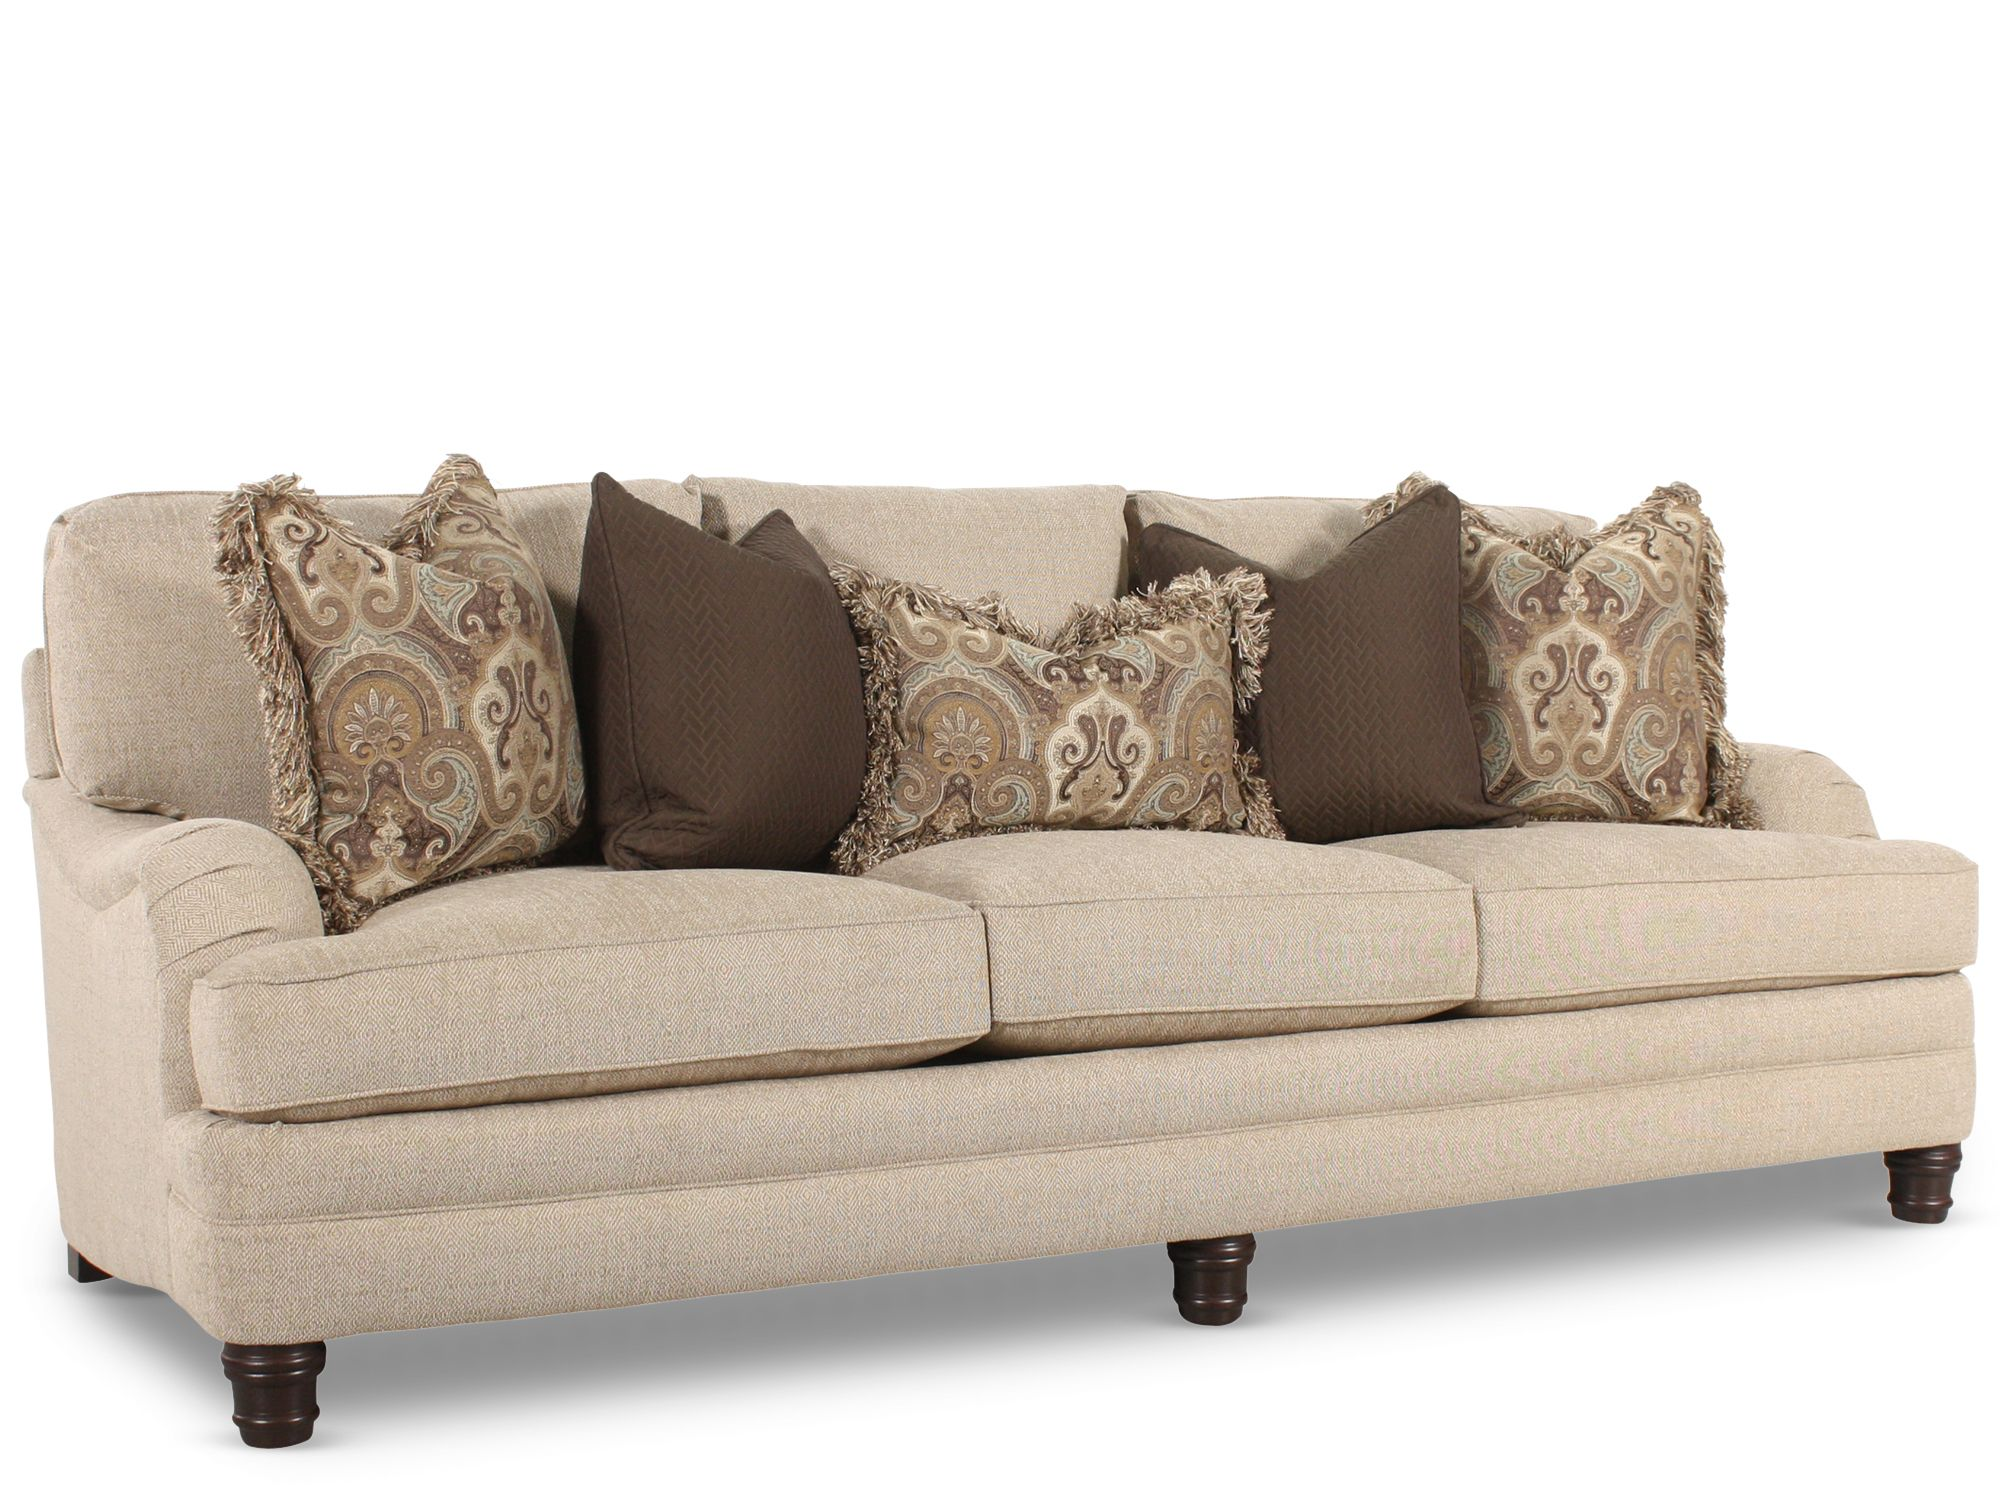 Bernhardt tarleton sofa mathis brothers furniture for Where to buy bernhardt furniture online